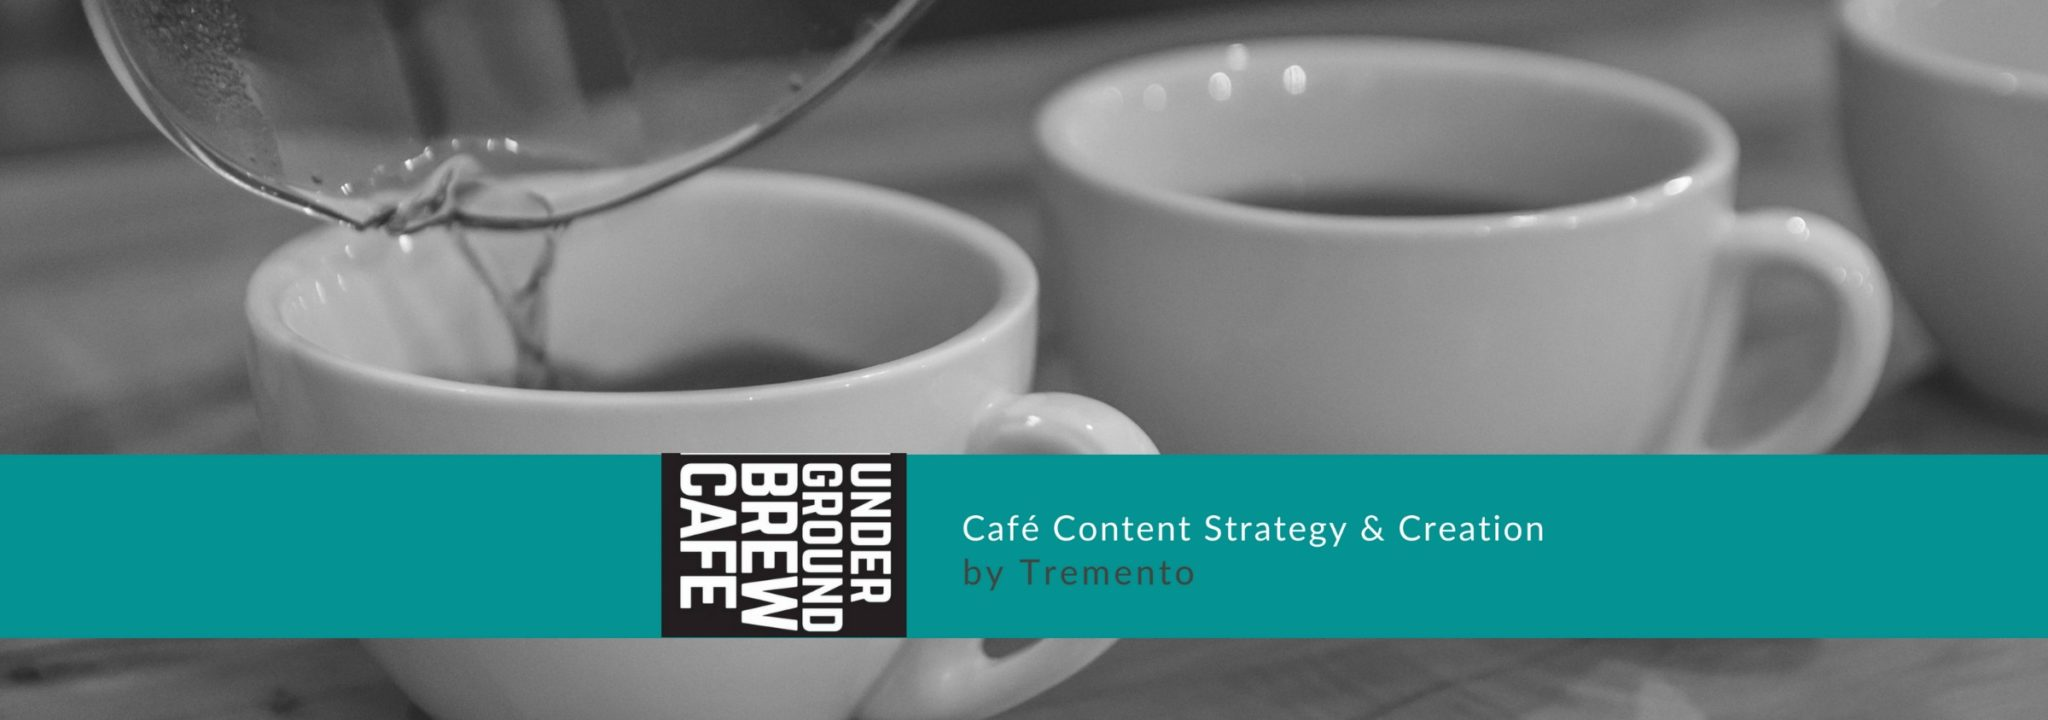 Underground Brew Café - Content Strategy & Creation - Hospitality Advertising Agency Tremento